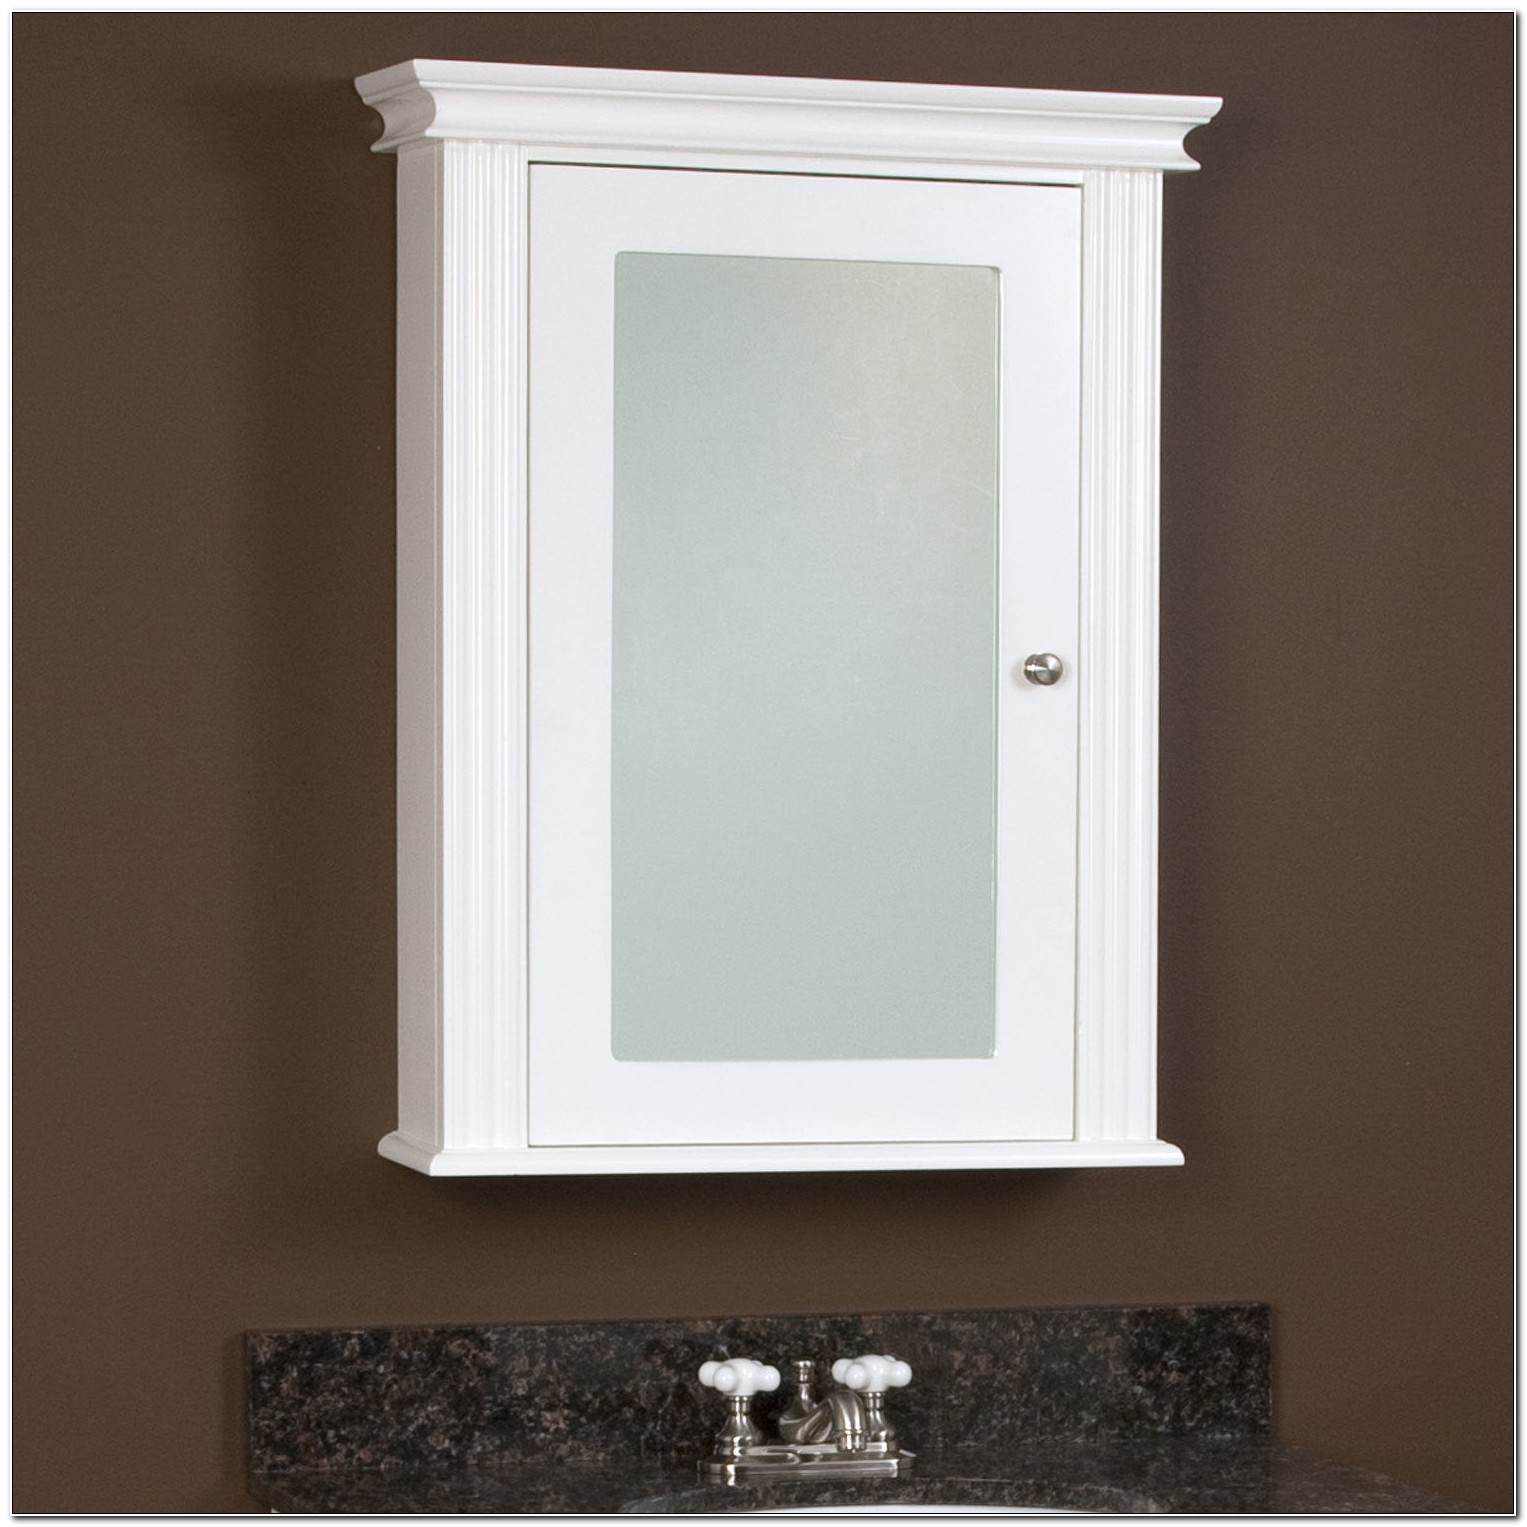 Recessed White Wood Framed Medicine Cabinets